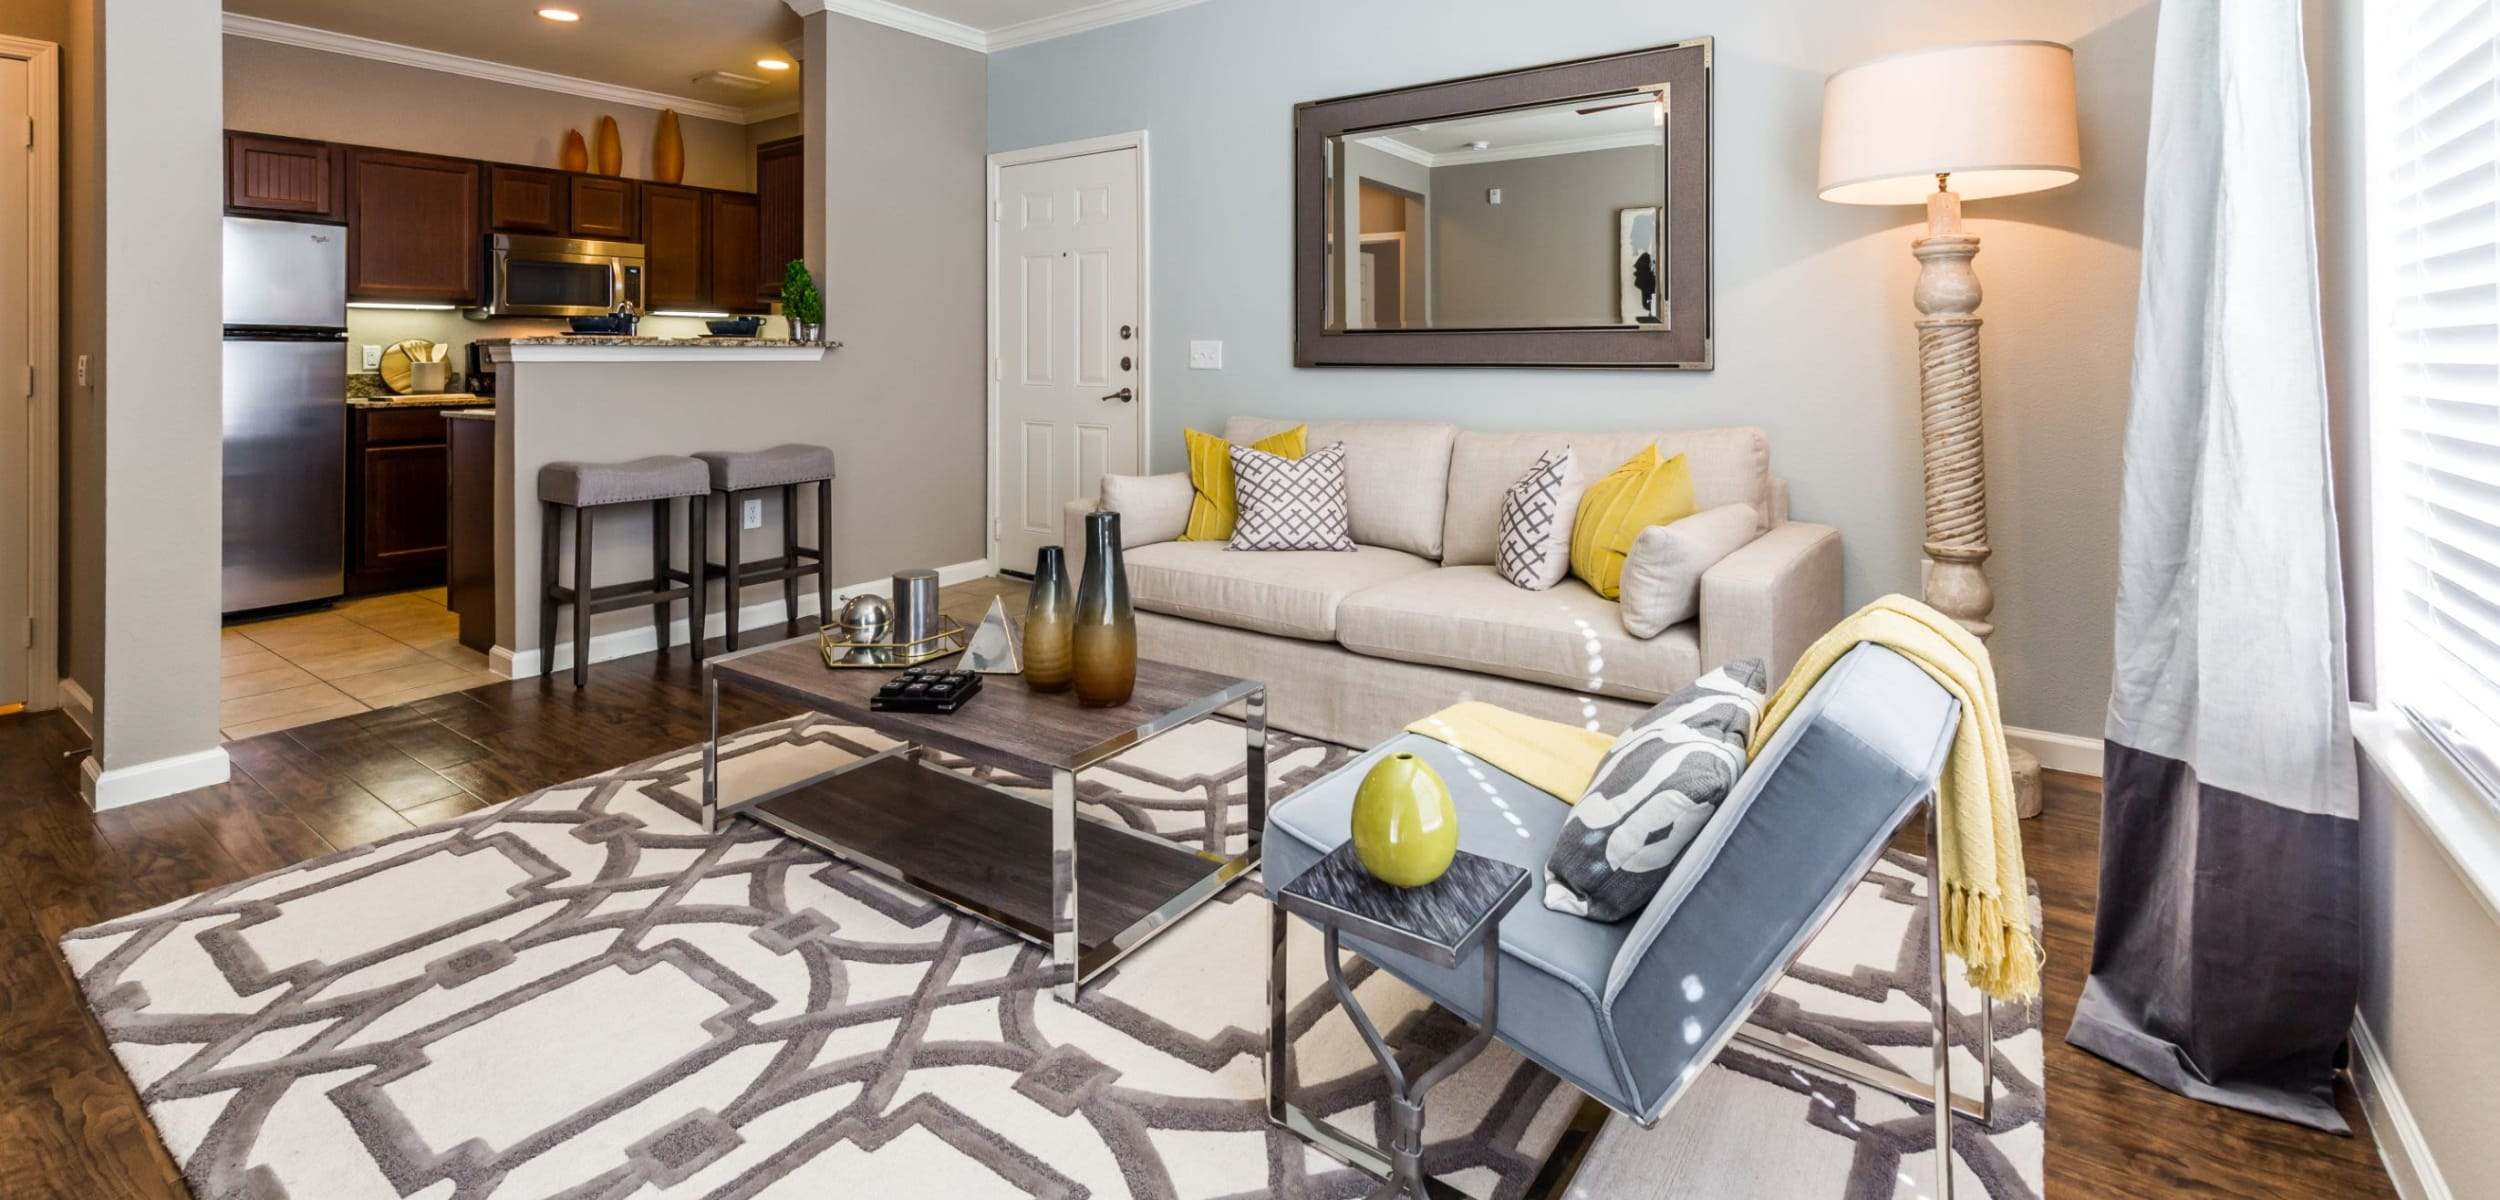 Open and bright living area with wood floors and a large rug at Marquis at Crown Ridge in San Antonio, Texas